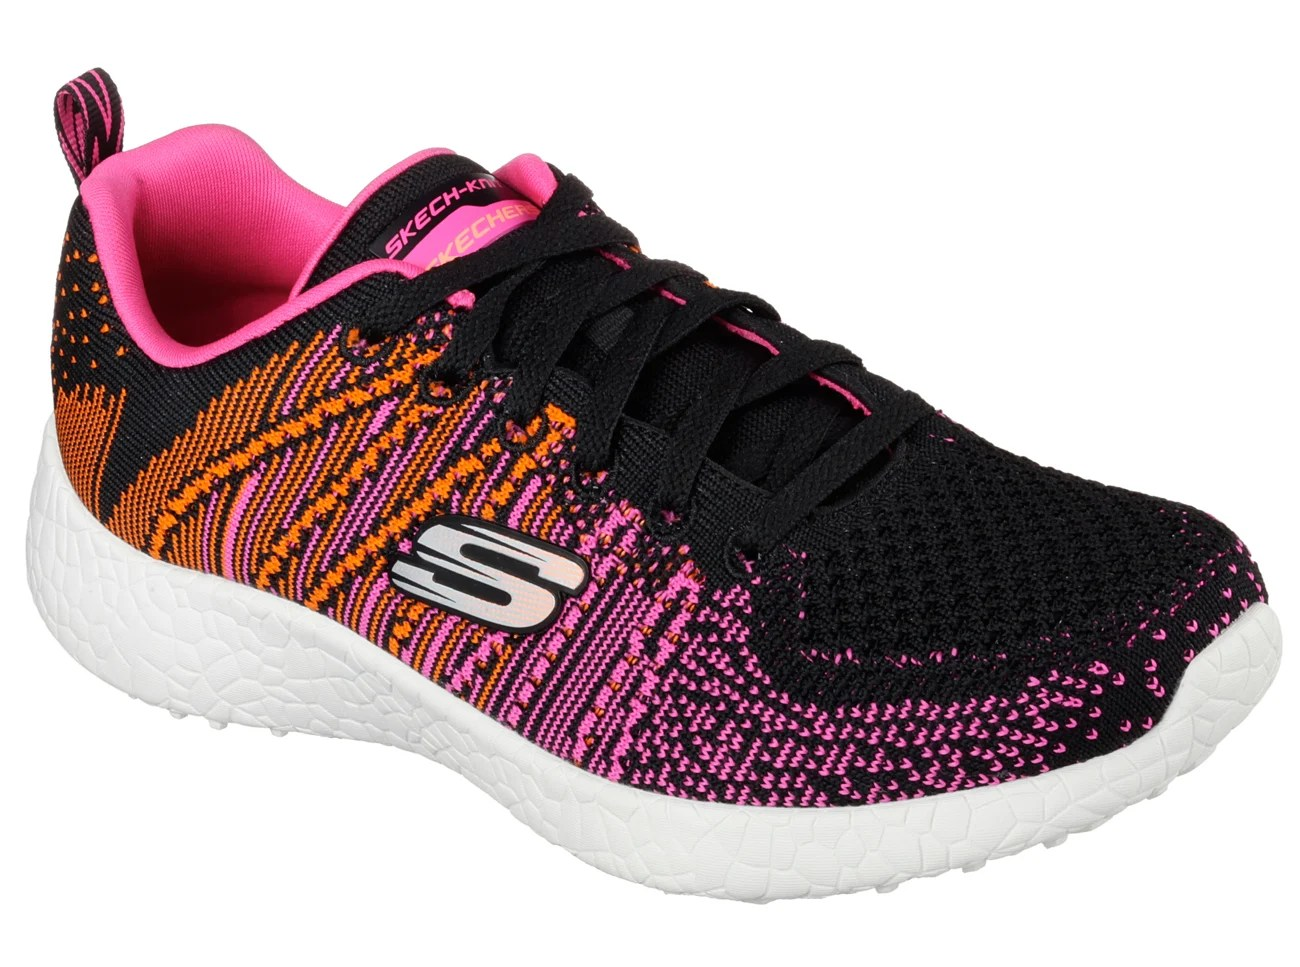 Skechers Shamelessly Rips Off adidas Boost Technology   Nice